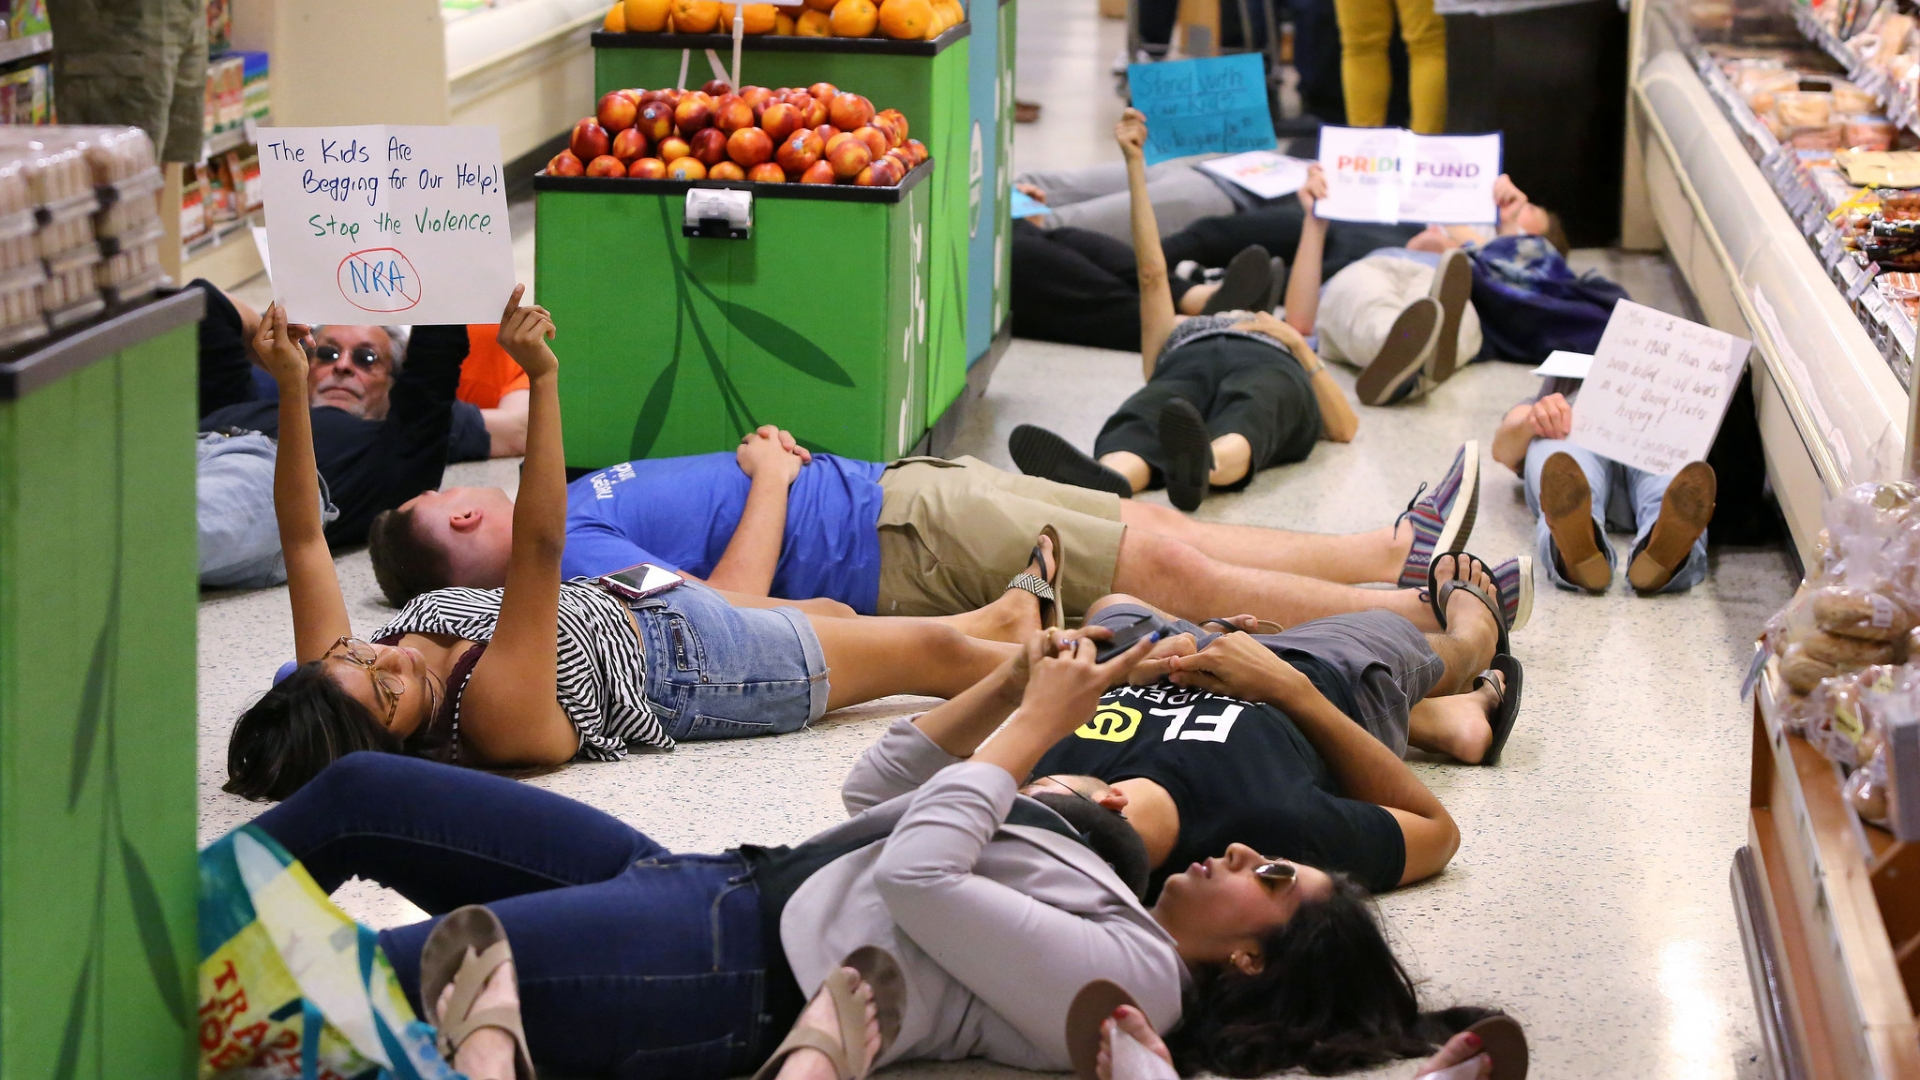 Publix Protesters The Nra What You Don T Know Orlando Sentinel